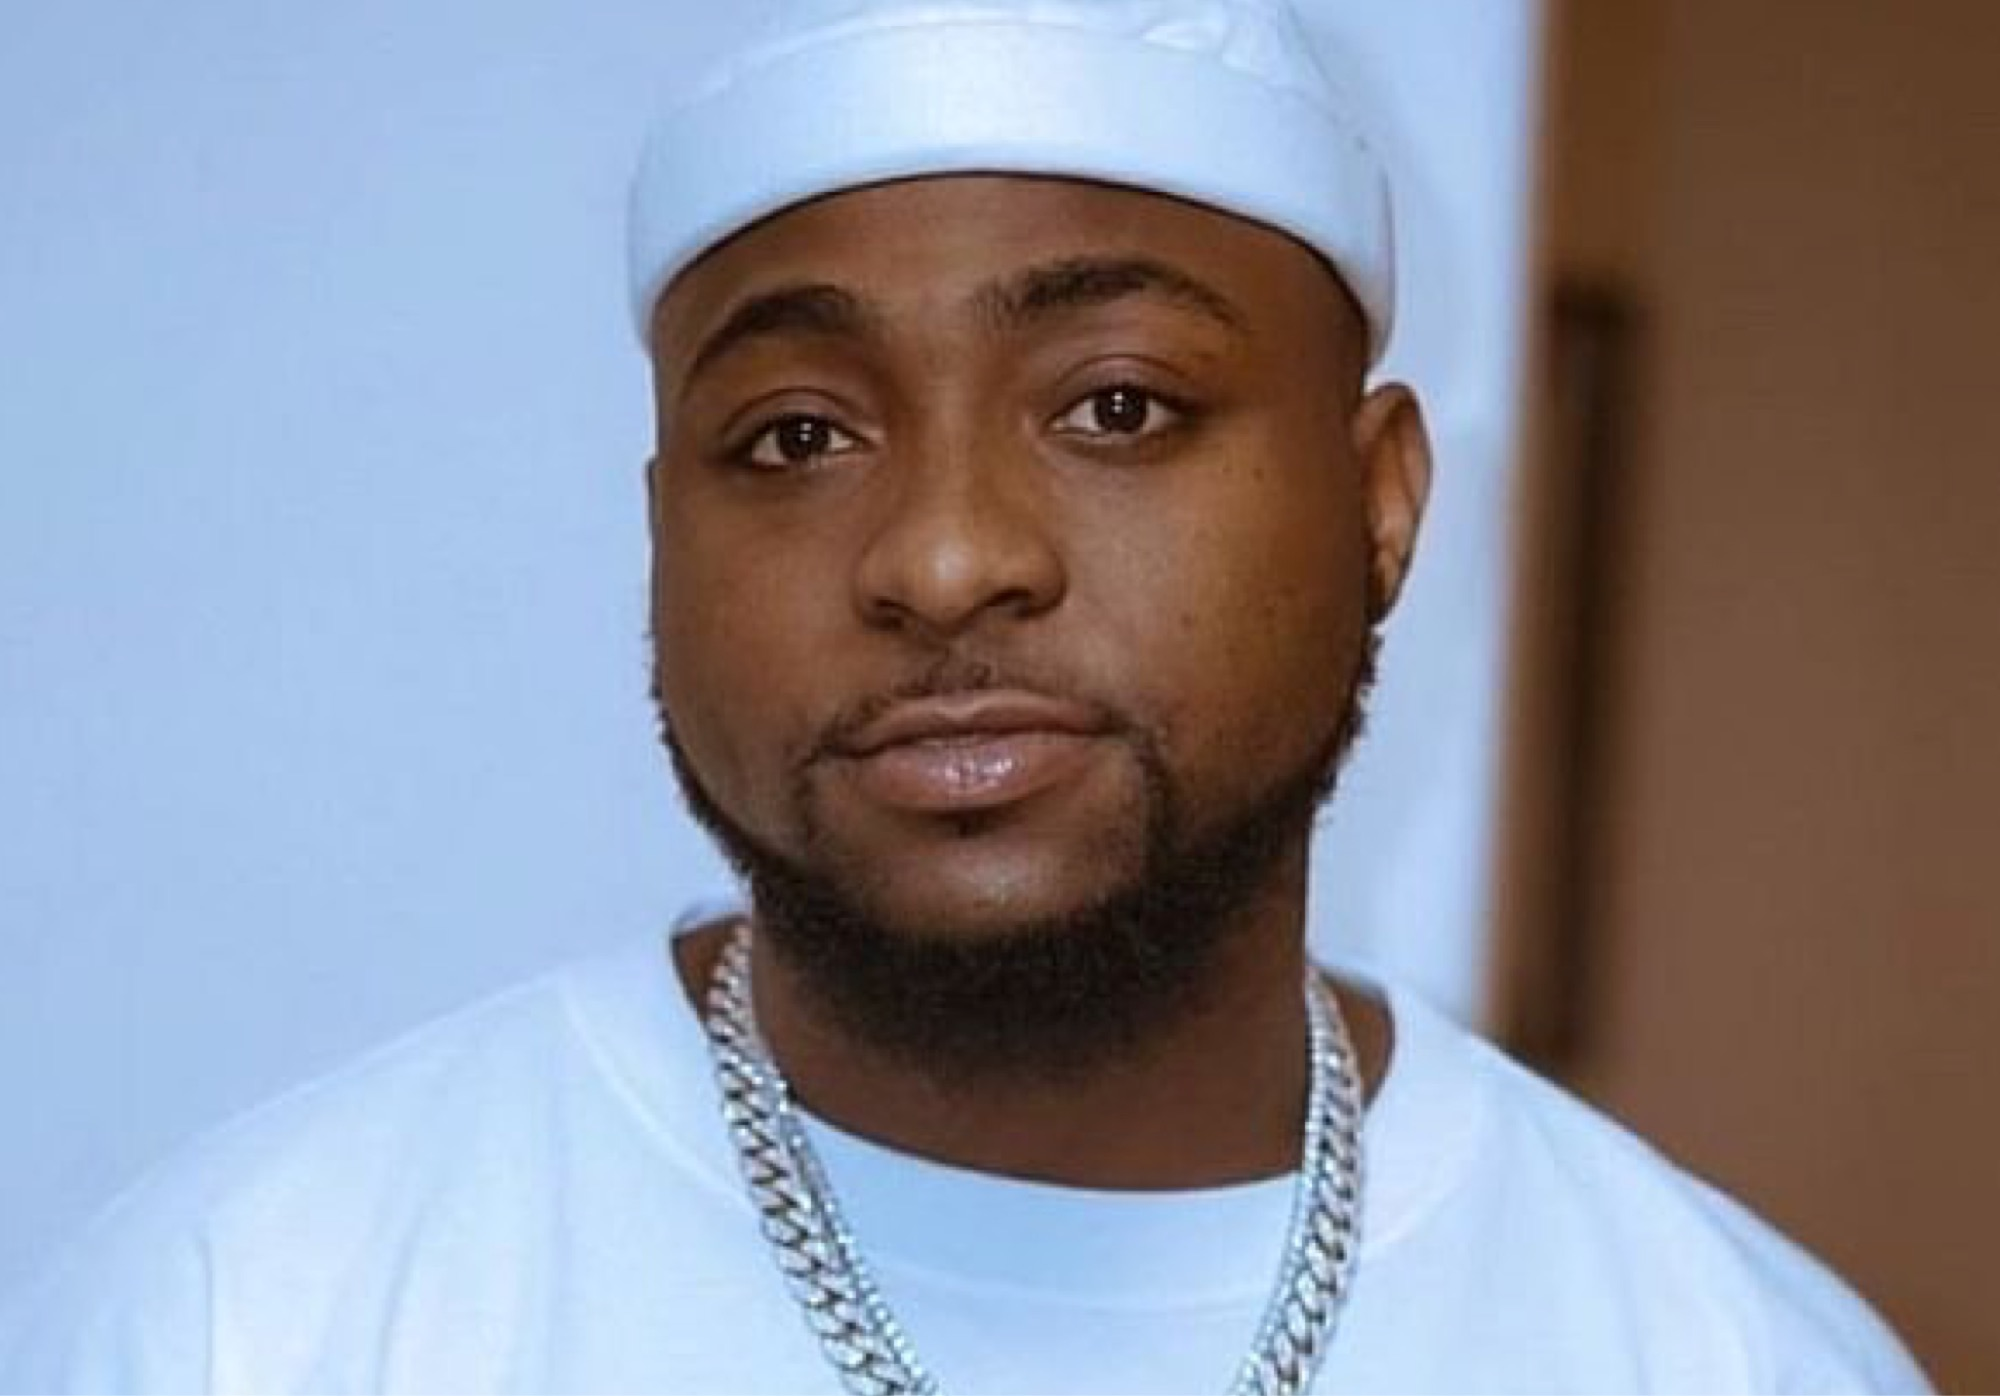 Davido Rejoices As He Finally Gets To Use His Name On Instagram